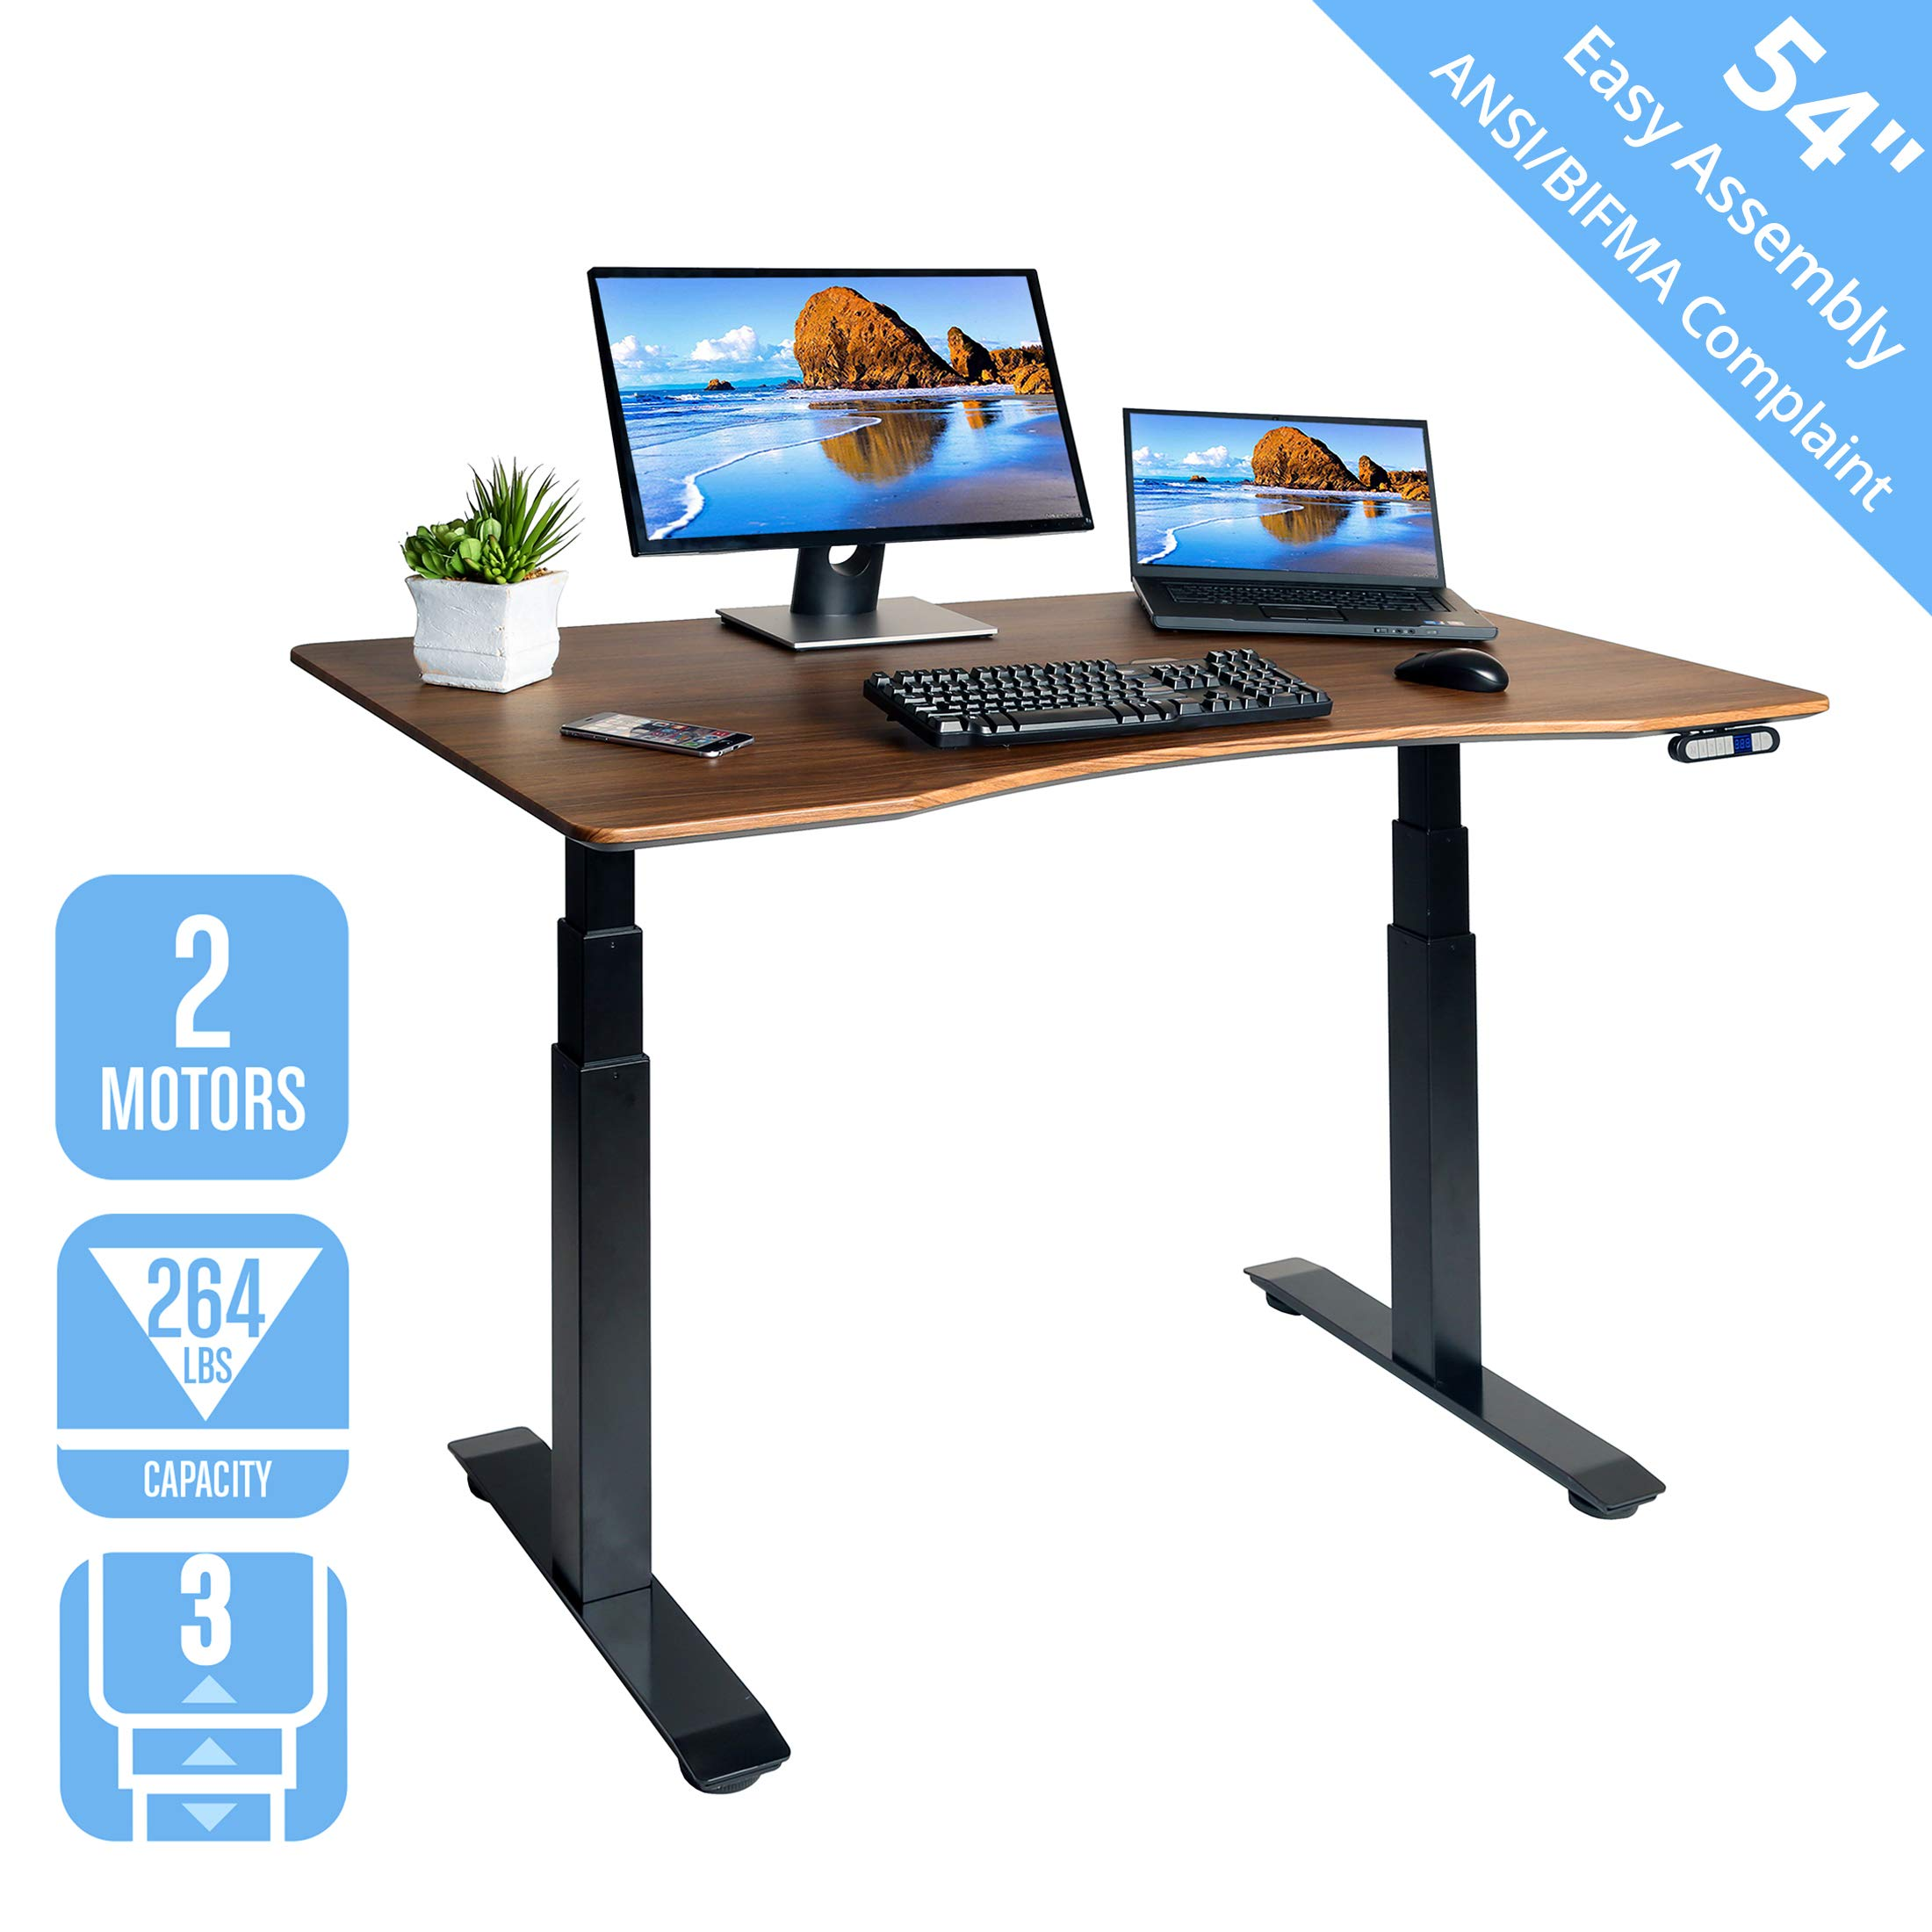 Seville Classics OFFK65826 Airlift S3 Electric Standing Desk with 54'' Top, Dual Motors, 4 Memory Buttons, LED Height Display (Max. 51.4'' H) 3-Section Base, Black/Walnut, Wood,